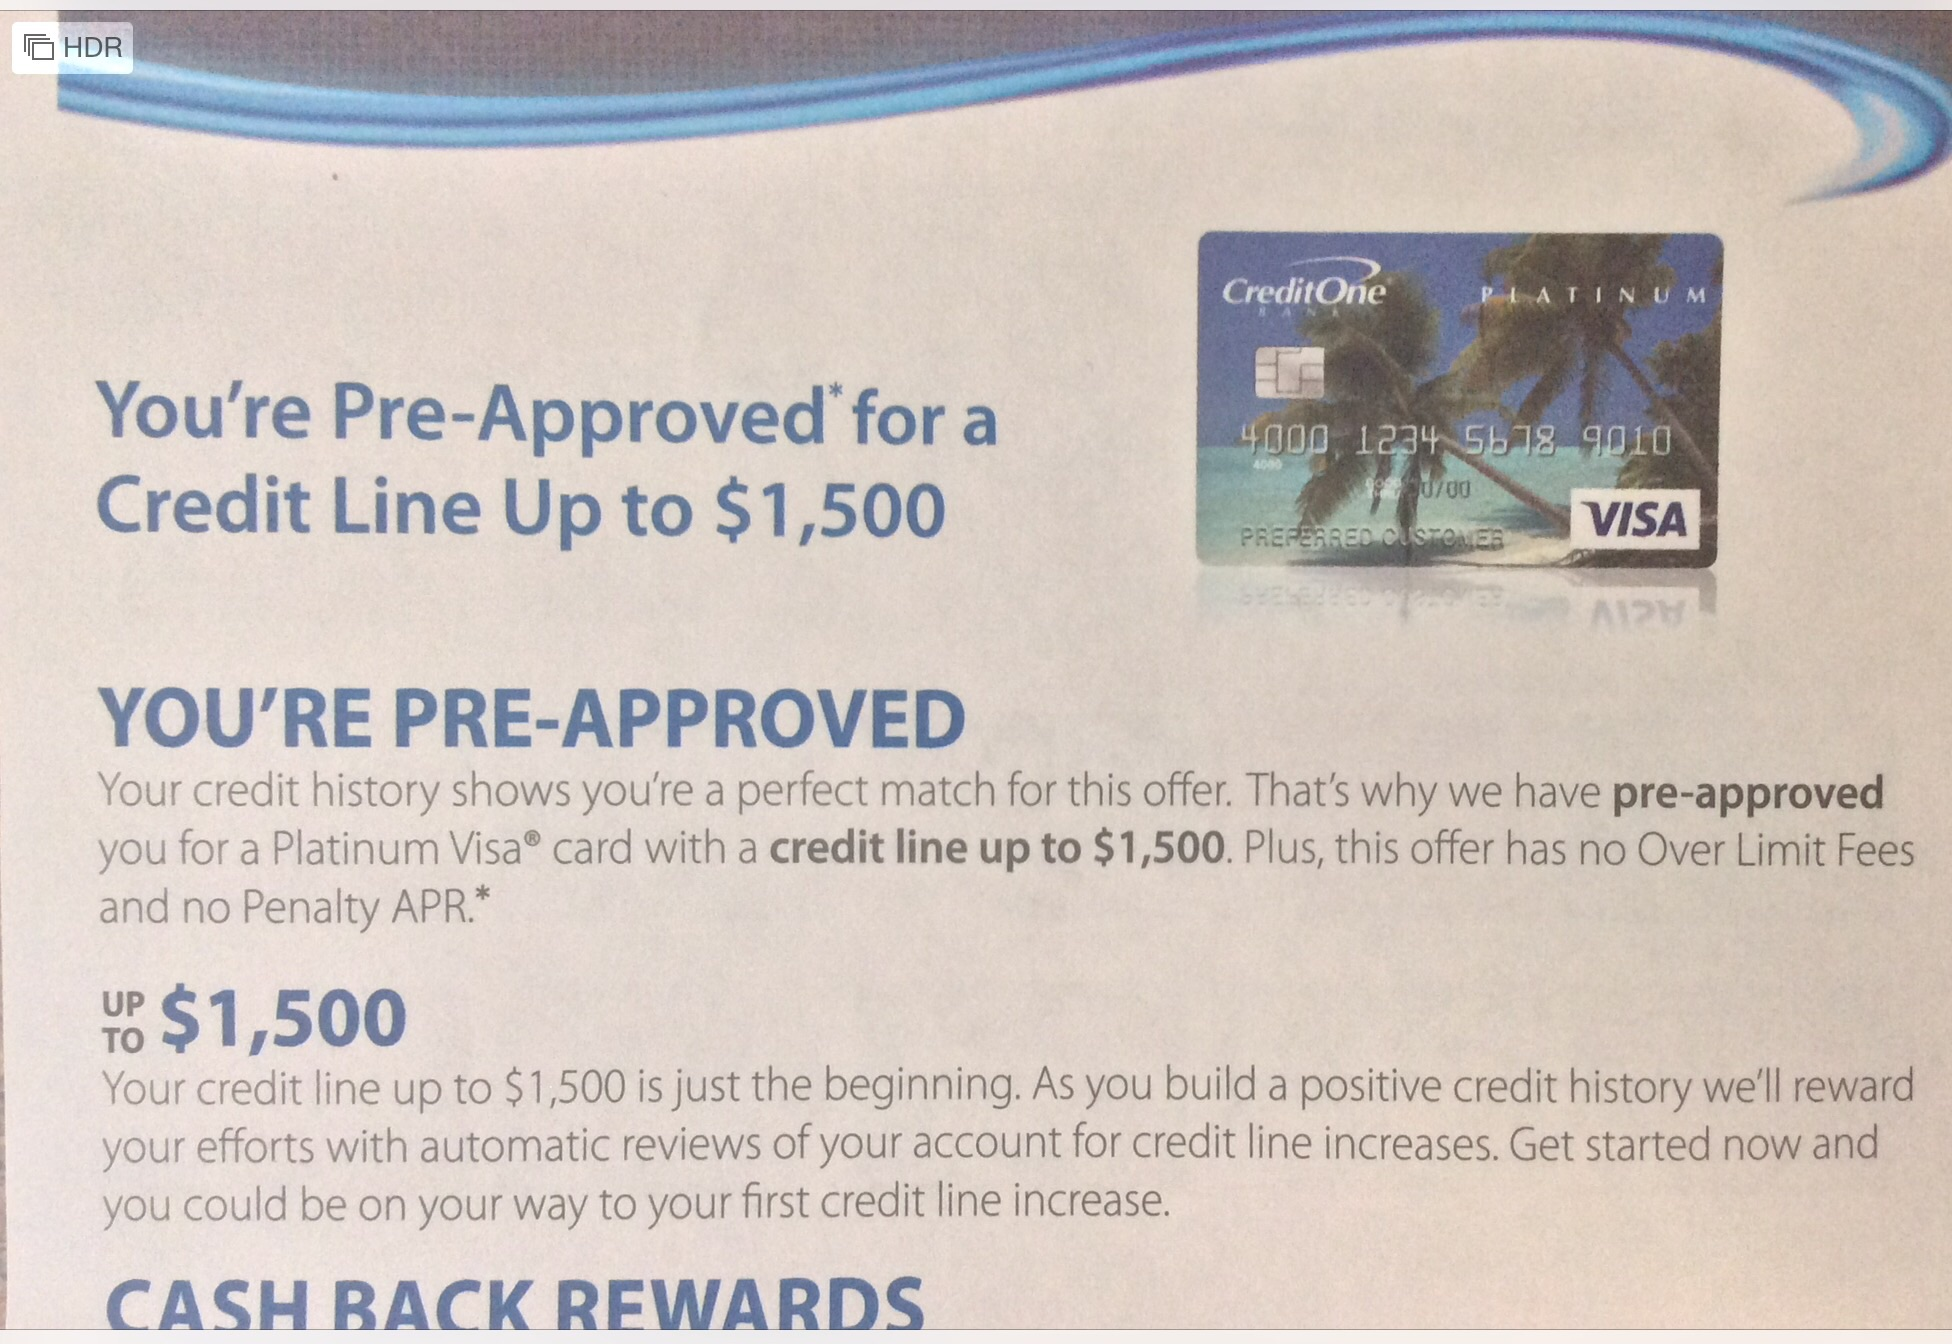 Credit One Pre Approval >> Got Ths Gem Of A Preapproval Today Myfico Forums 4803191